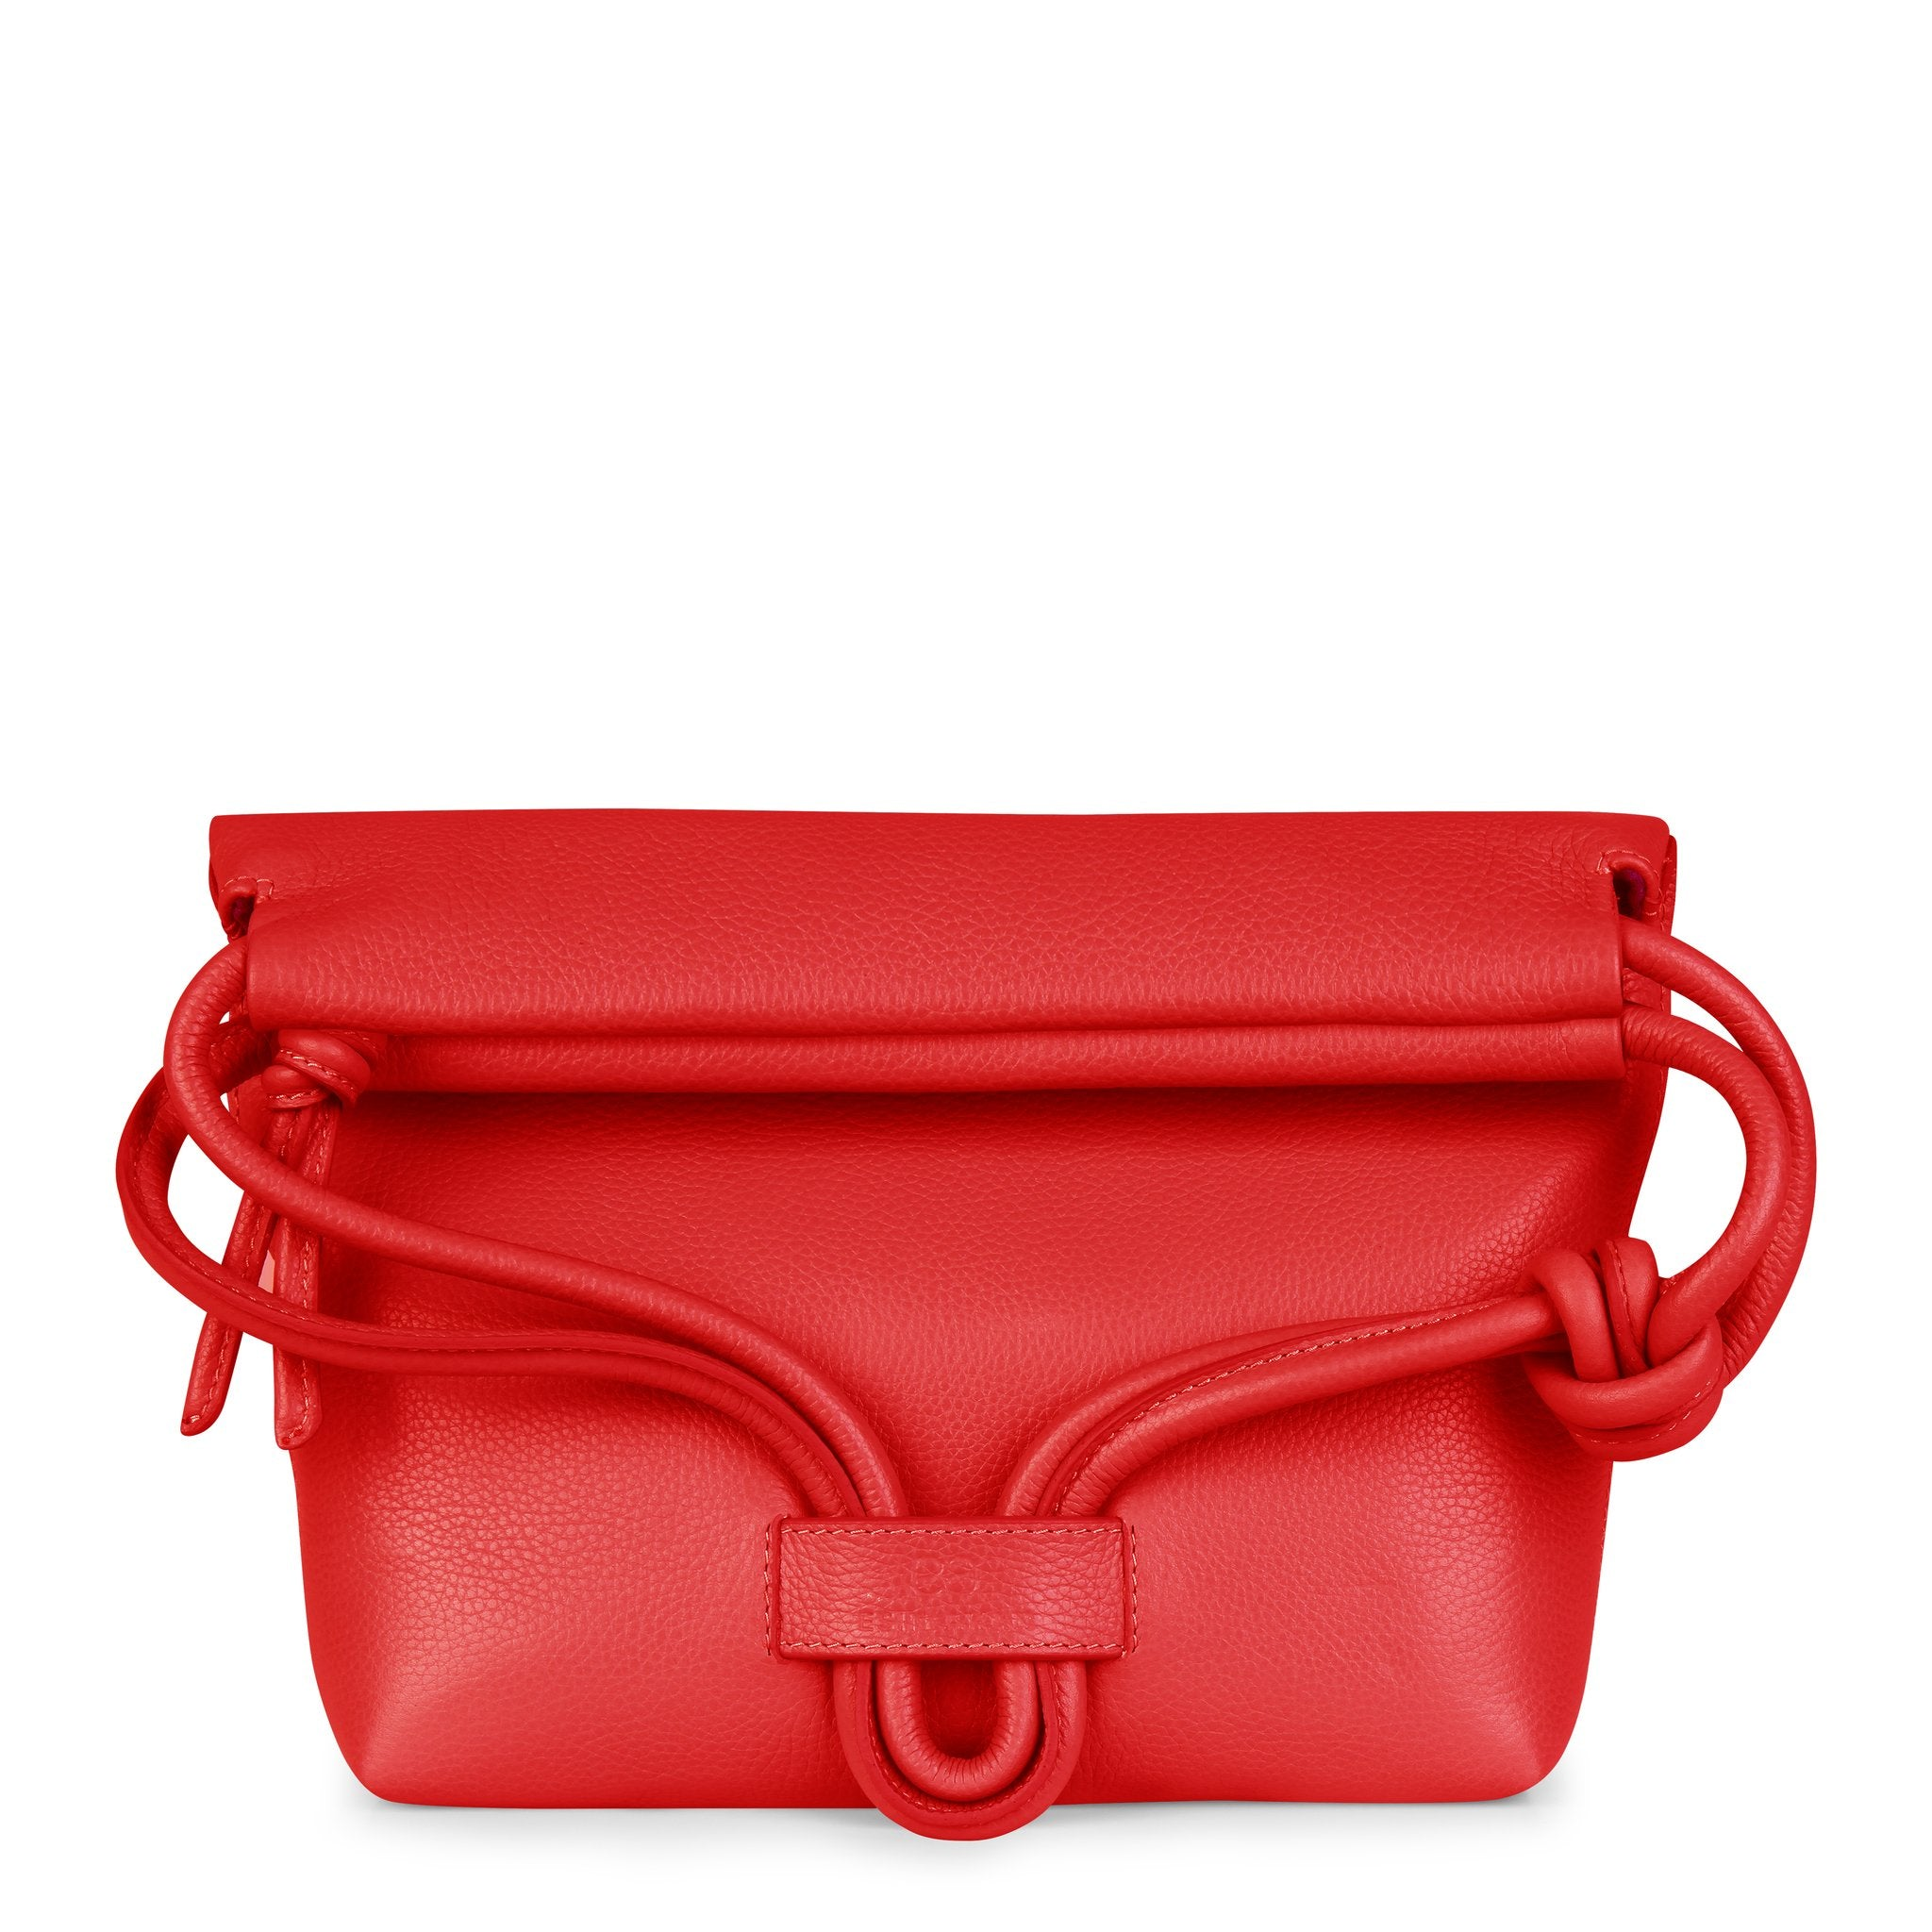 A convertible leather red shoulder bag for women with a knot detail on the strap shown as a clutch bag, front image.